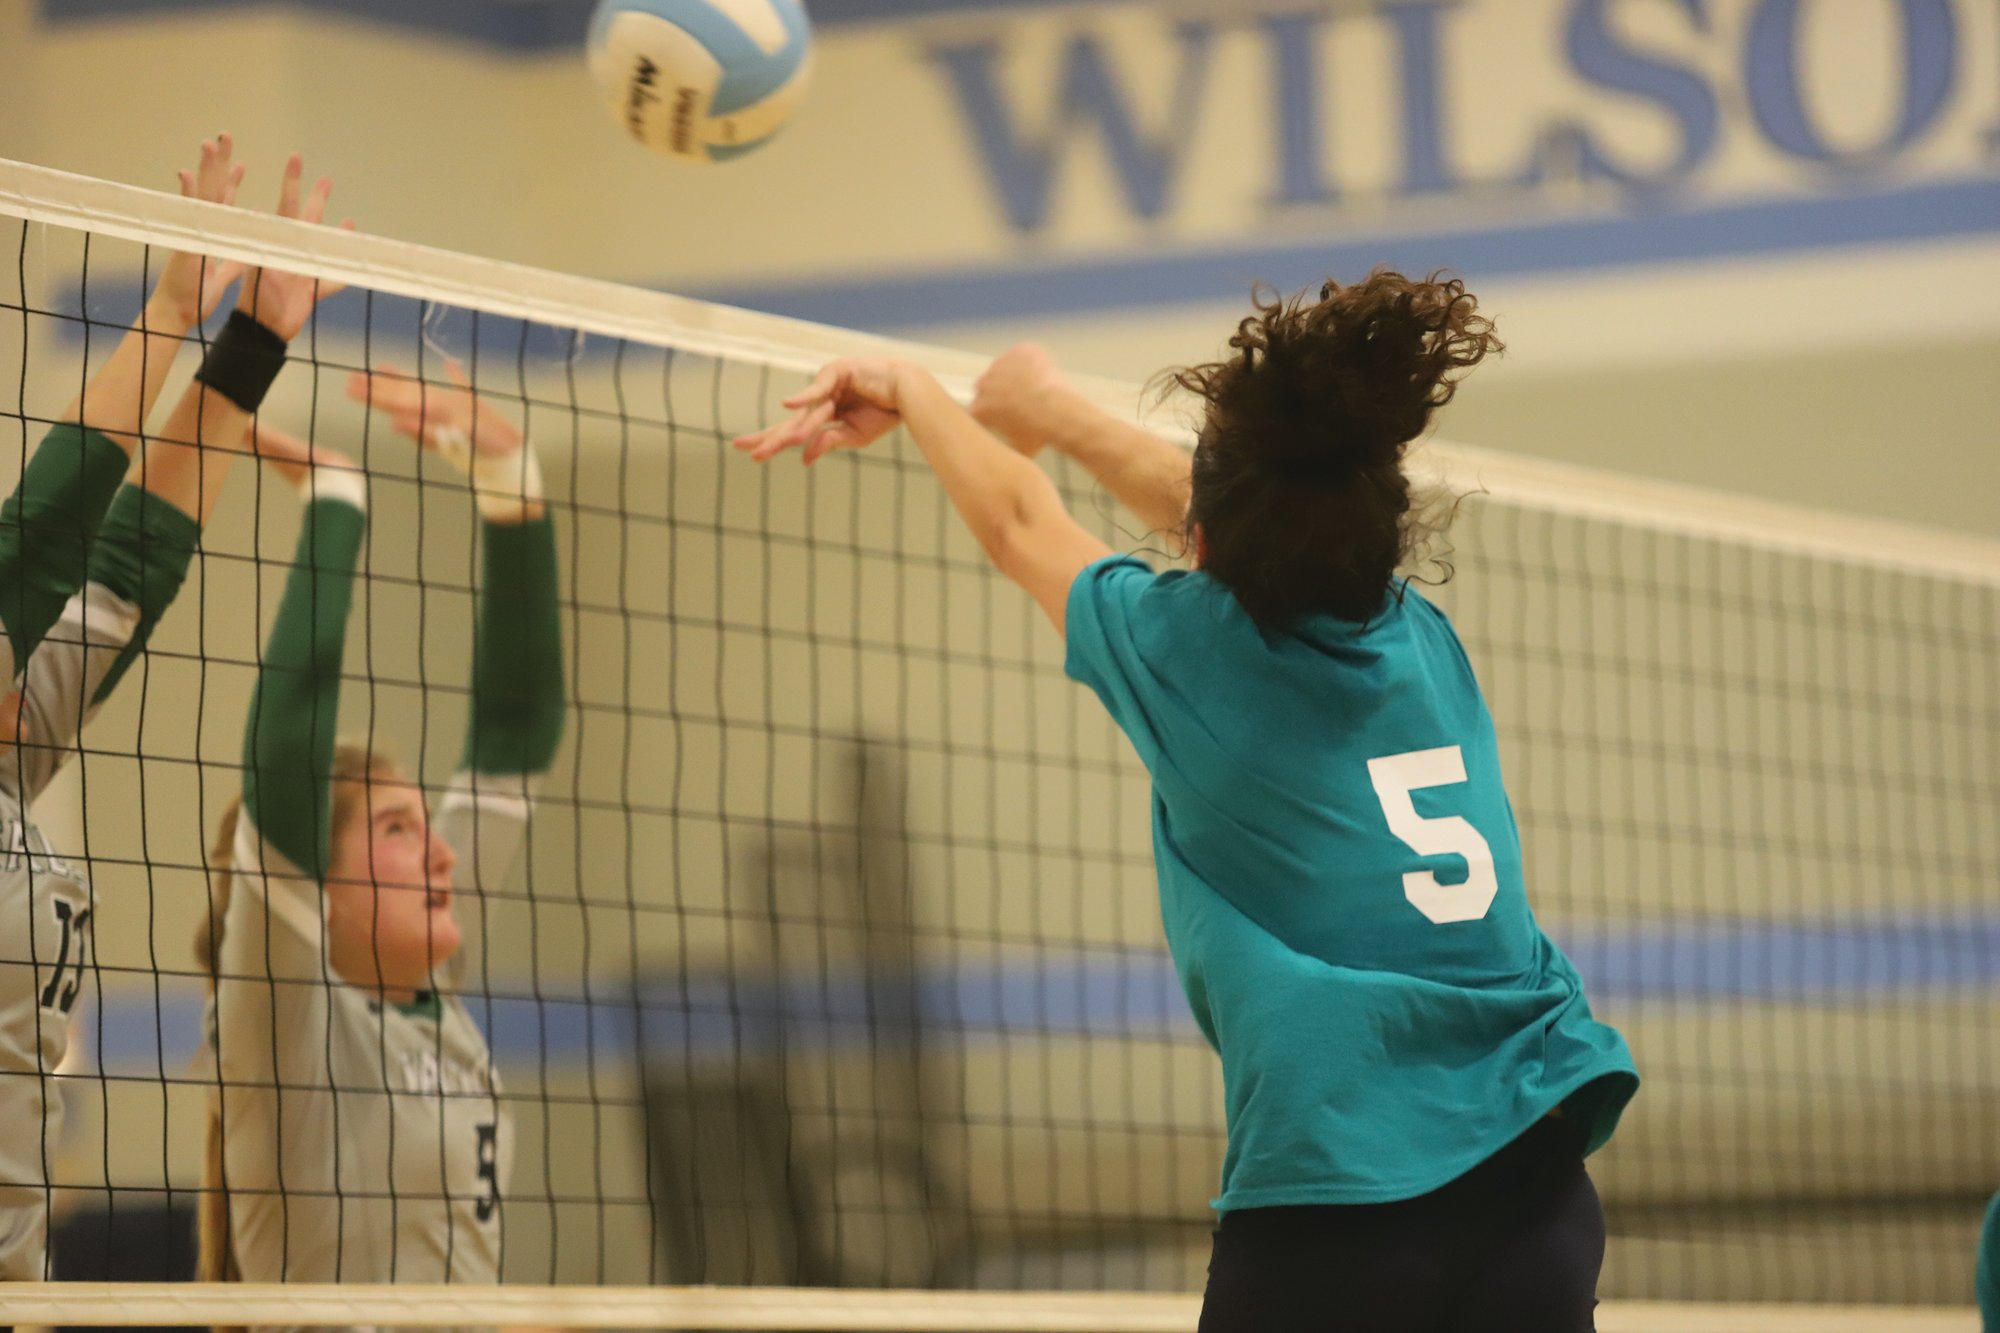 J. SCOTT SEWELL / The Sumter Item  Wilson Hall's Lucy Matthews goes for a kill in the Lady Barons' 3-2 victory over Ben Lippen on Thursday. Wilson Hall is 10-4 on the season.